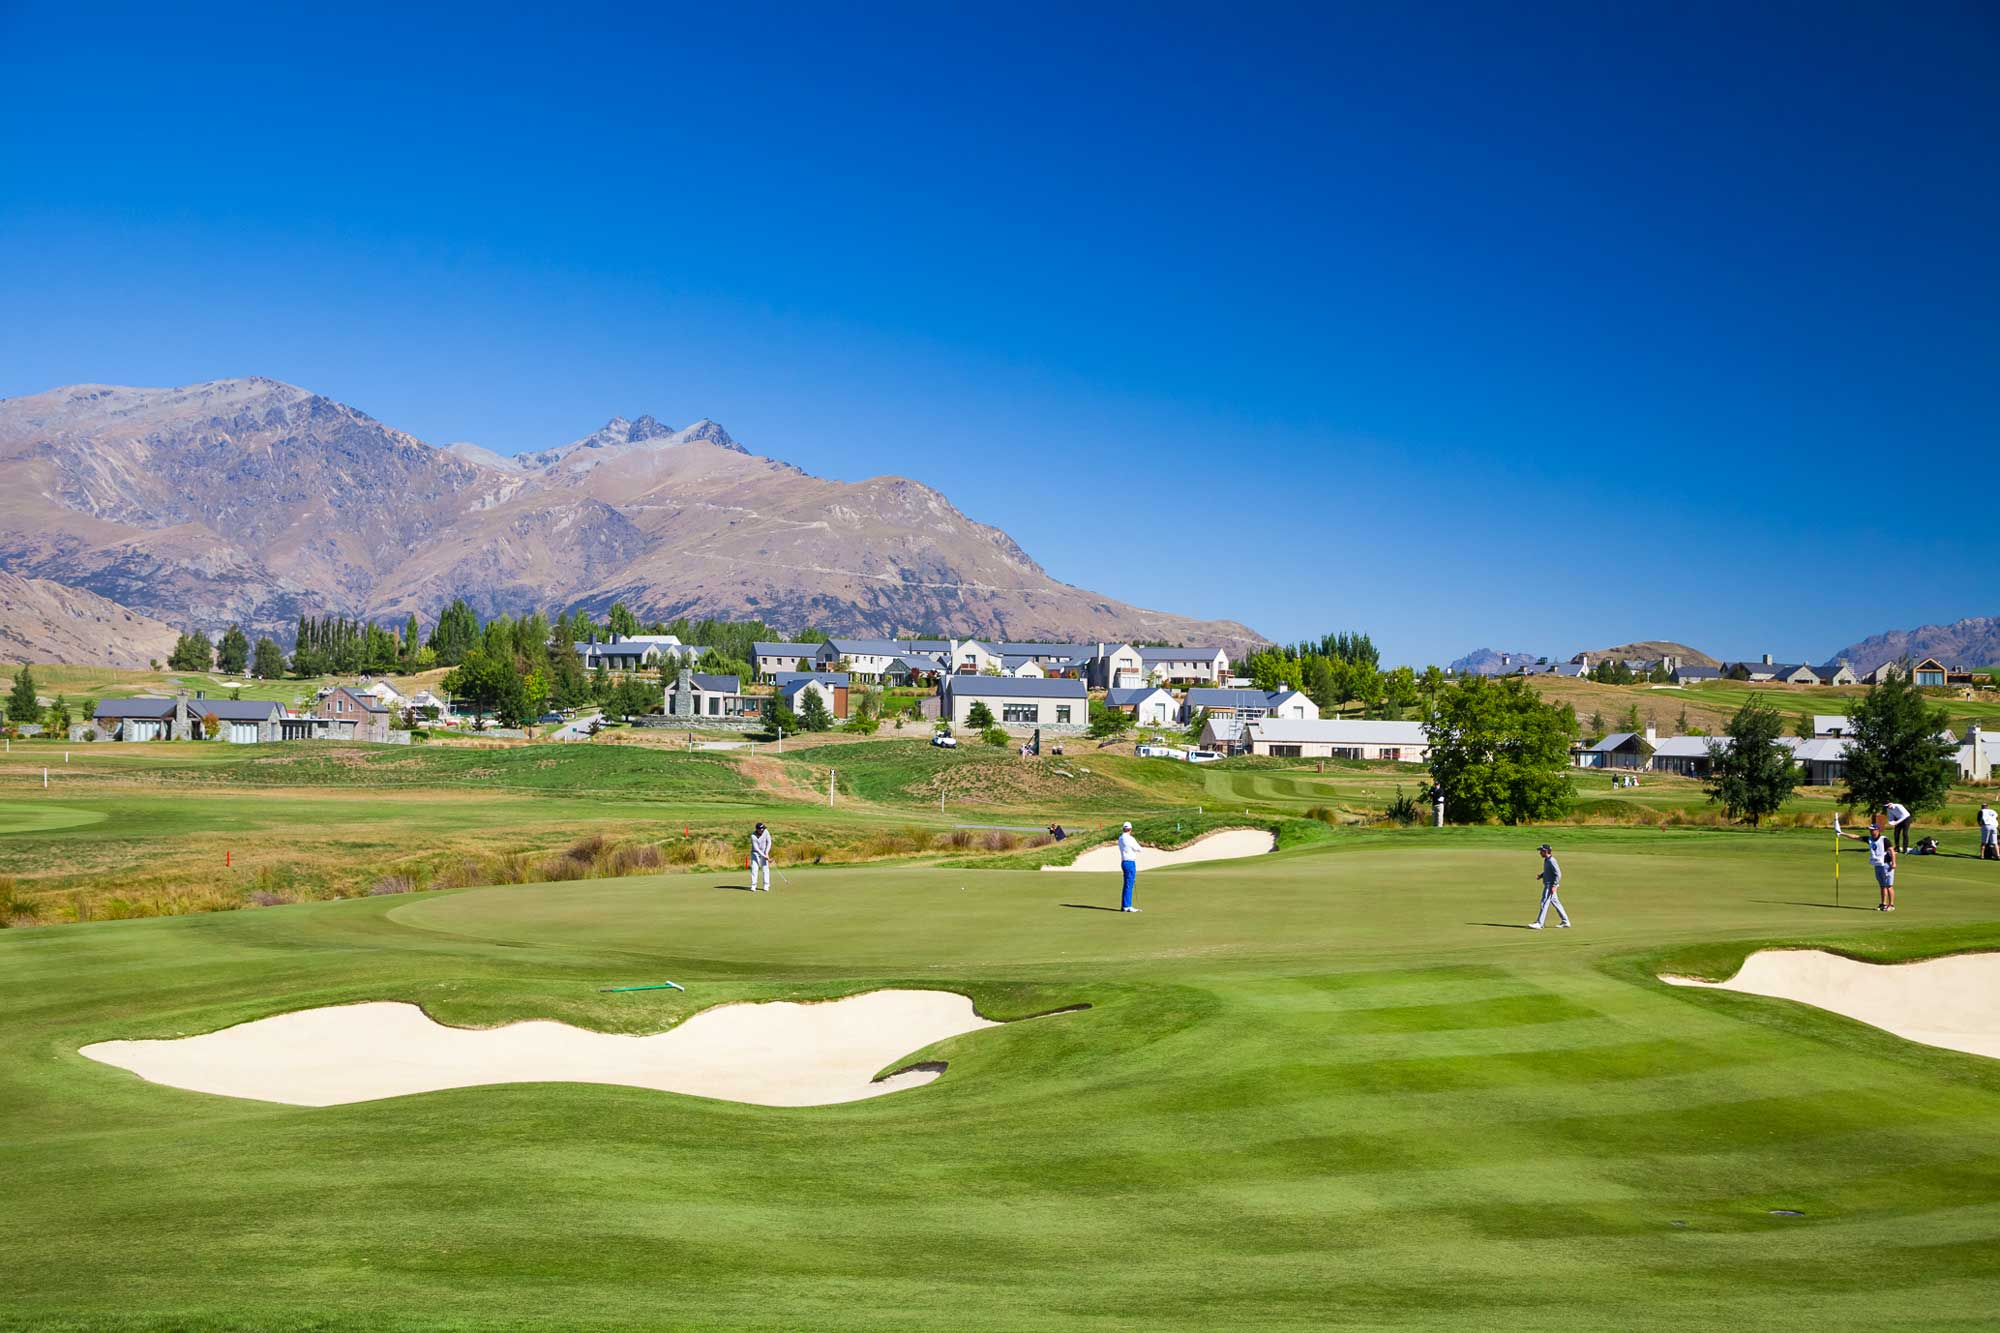 millbrook-queenstown-golf-stay-play-accmmodation-packages-photogallery.jpg